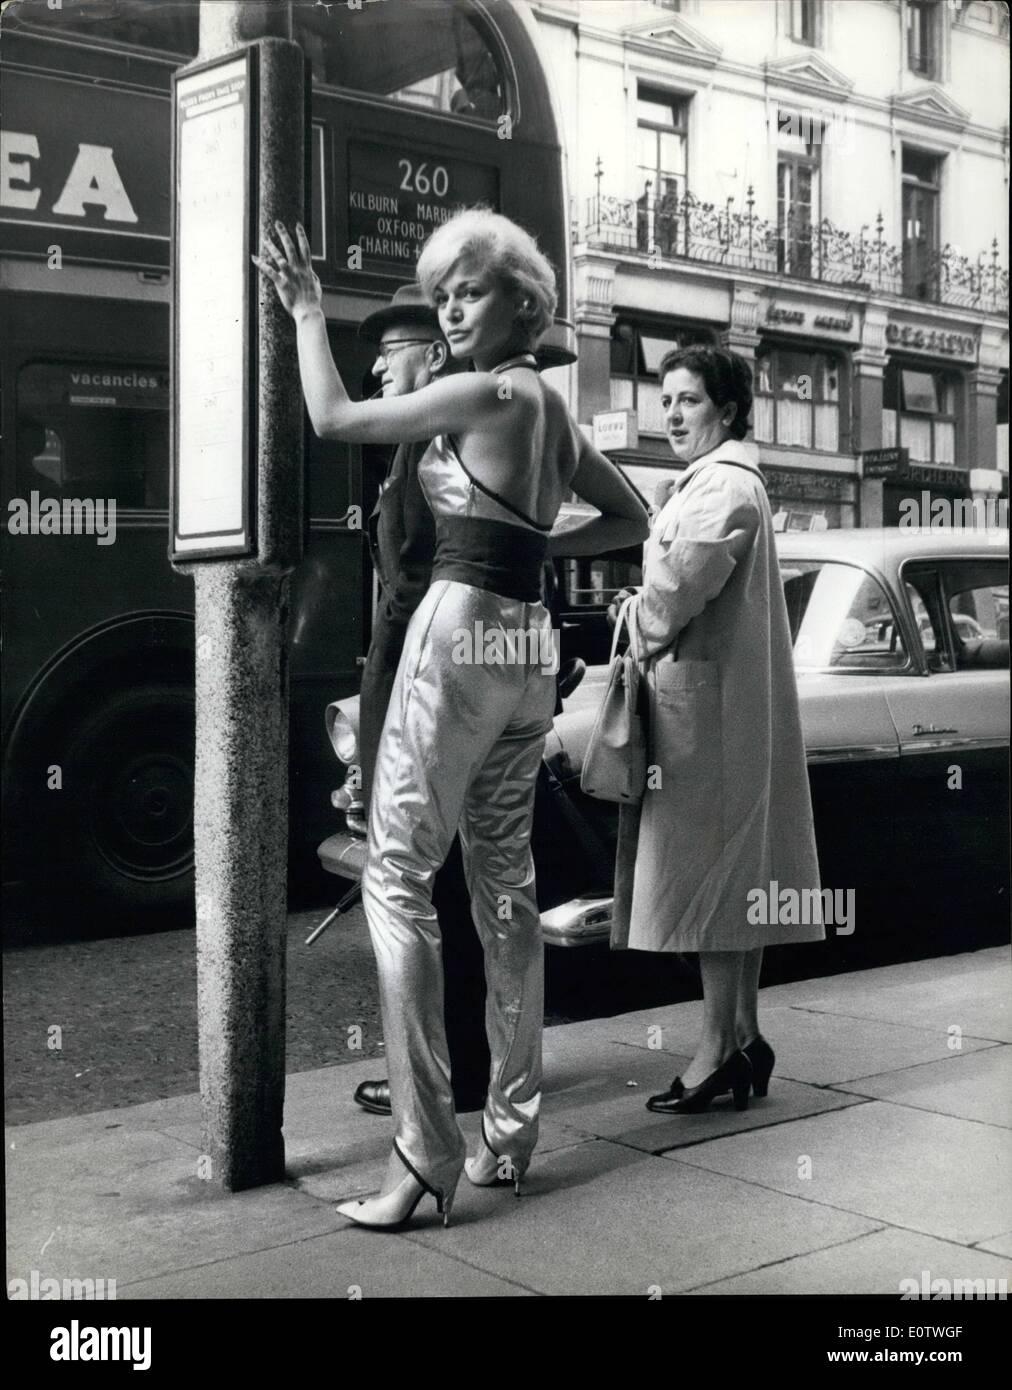 Aug. 08, 1960 - The Girl With The 250 Guinea Pants: German actress Margit Saad, pictured in London yesterday wearing tight fitting silk pants sprayed with 24 carat gold, and coasting 250 guineas. Margit will wear the pants for only 2 1/2 minutes in Tony Hancock's new film ''The Rebel'', in which she plays the part of his girl friend. - Stock Image